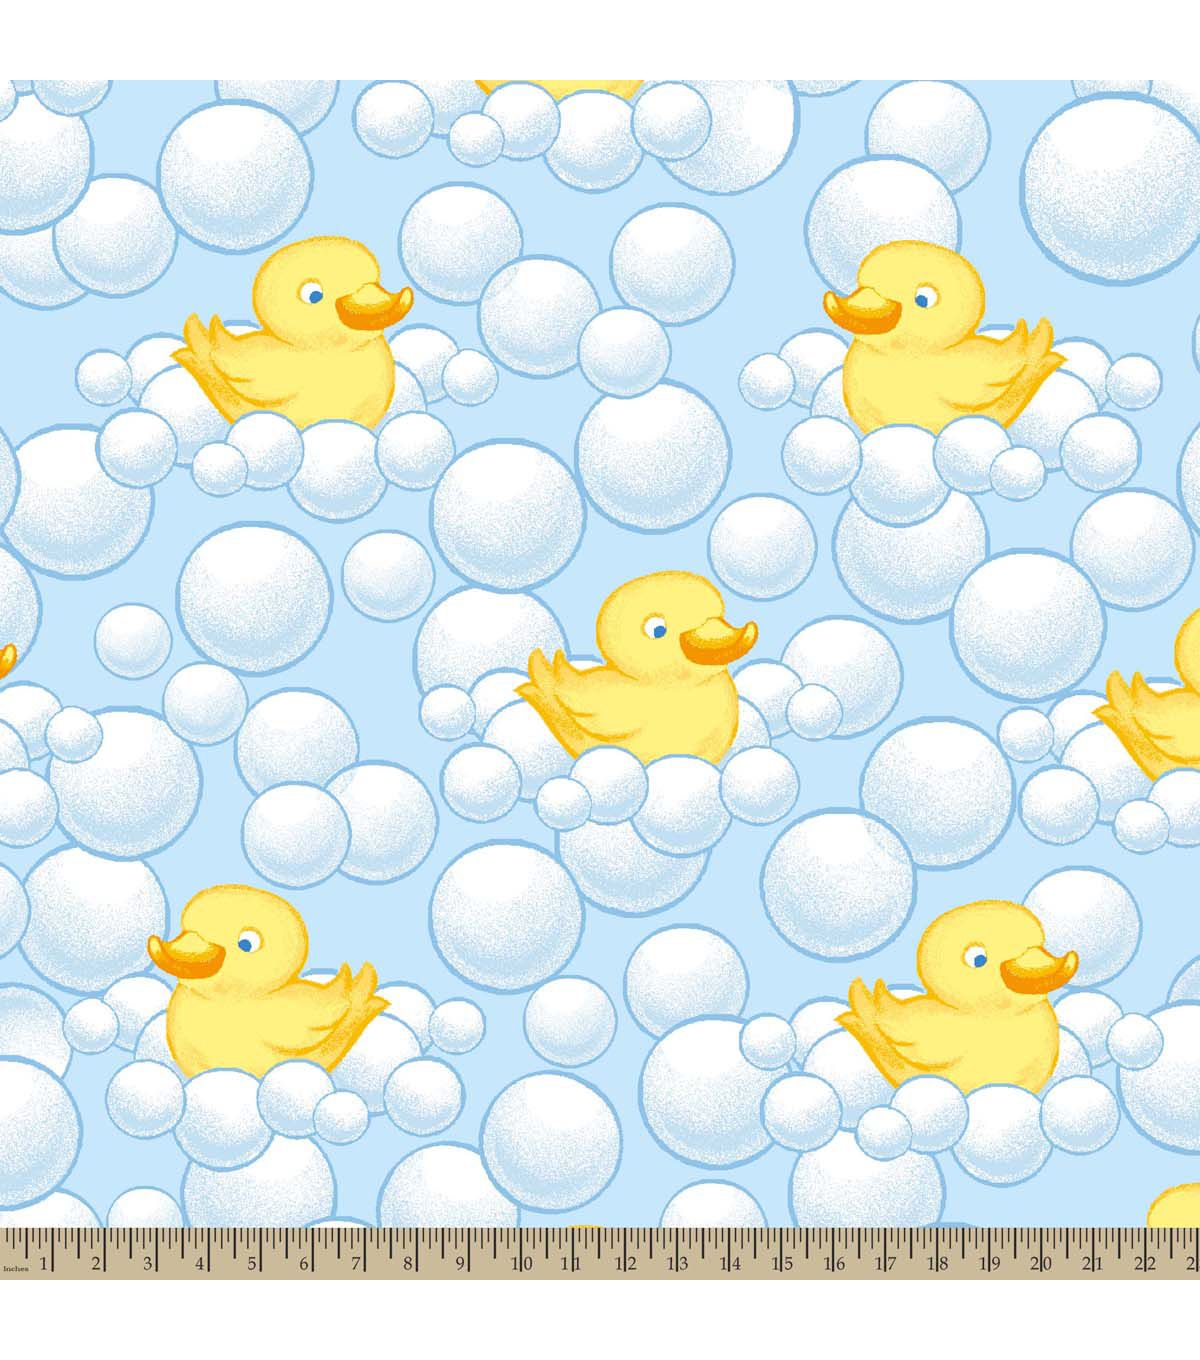 Nursery Fleece Fabric Bubble Duckie Pinterest Fabrics and Products